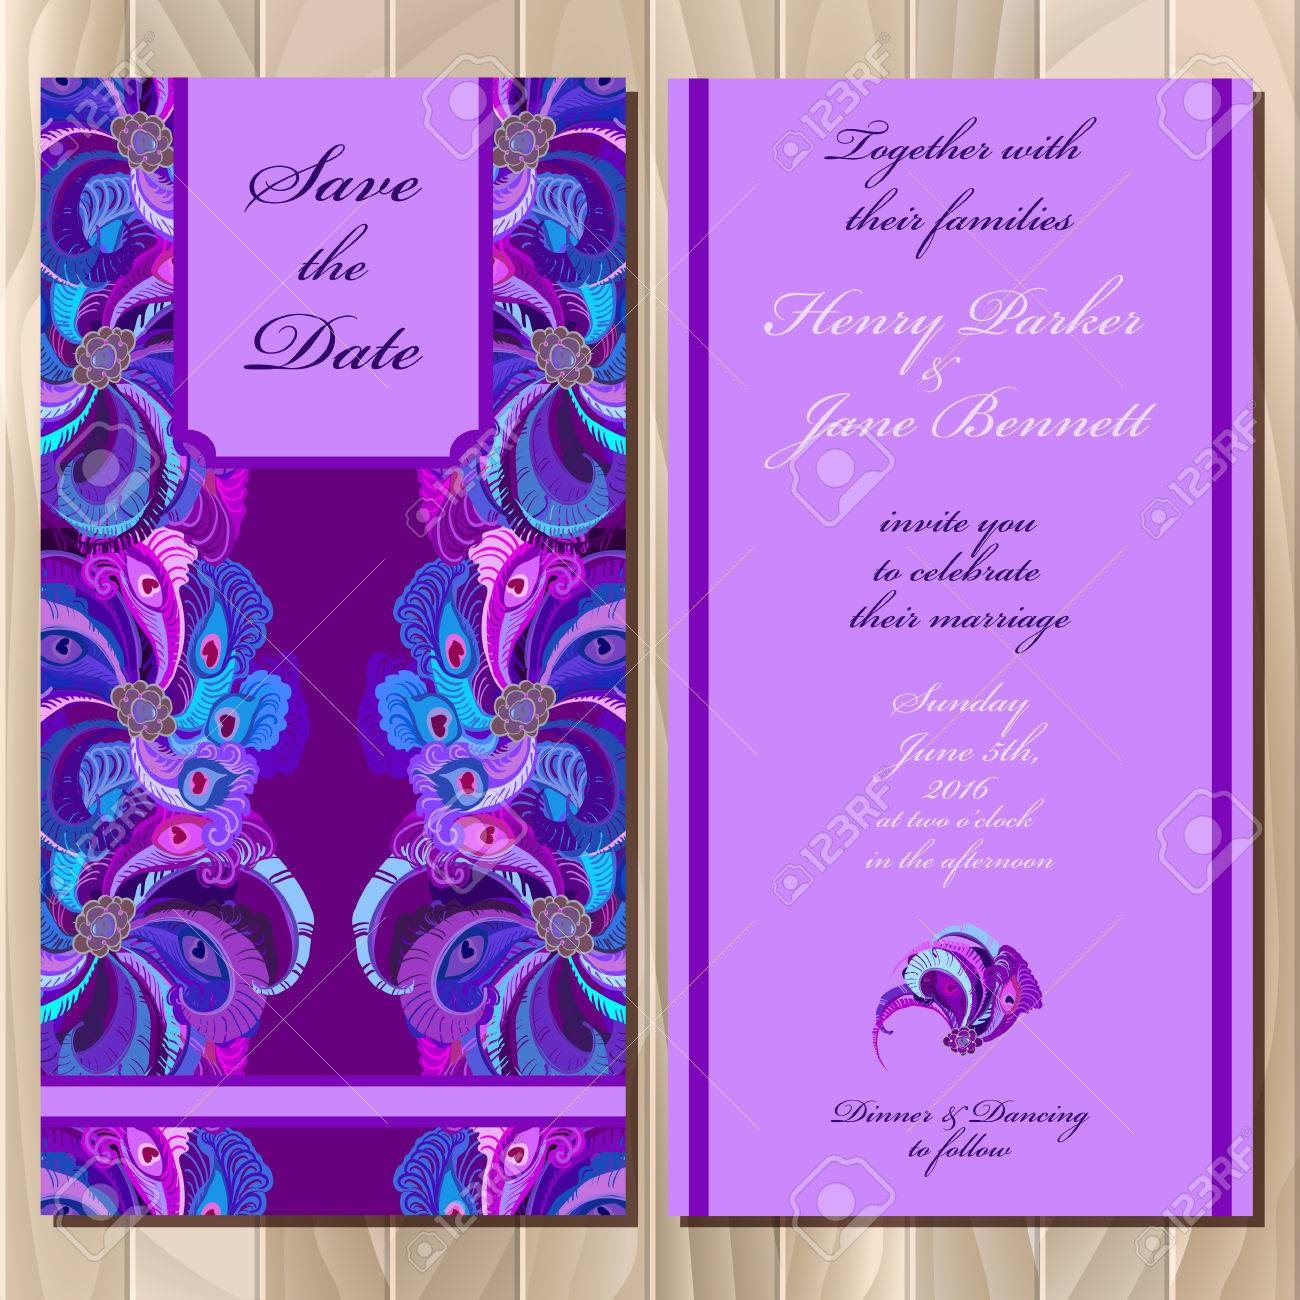 graphic regarding Printable Backgrounds identified as Marriage invitation card with pea feathers. Printable backgrounds..